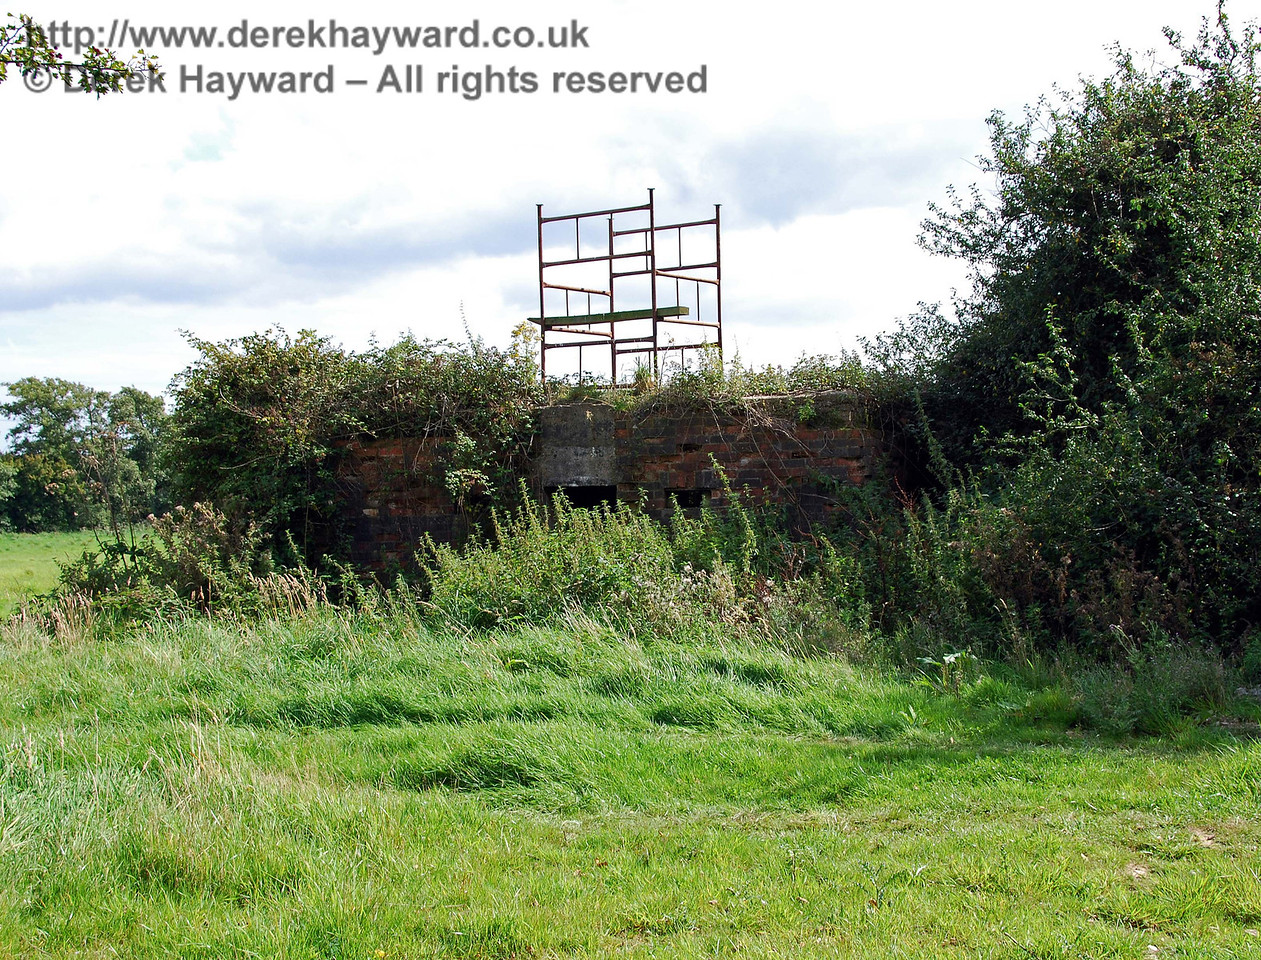 Just outside the line of trees, on the eastern side, was an old pillbox, obviously installed to defend the railway.  These pillboxes are quite common in the area.  How the scaffolding got up on the roof is anyone's guess! 02.09.2007